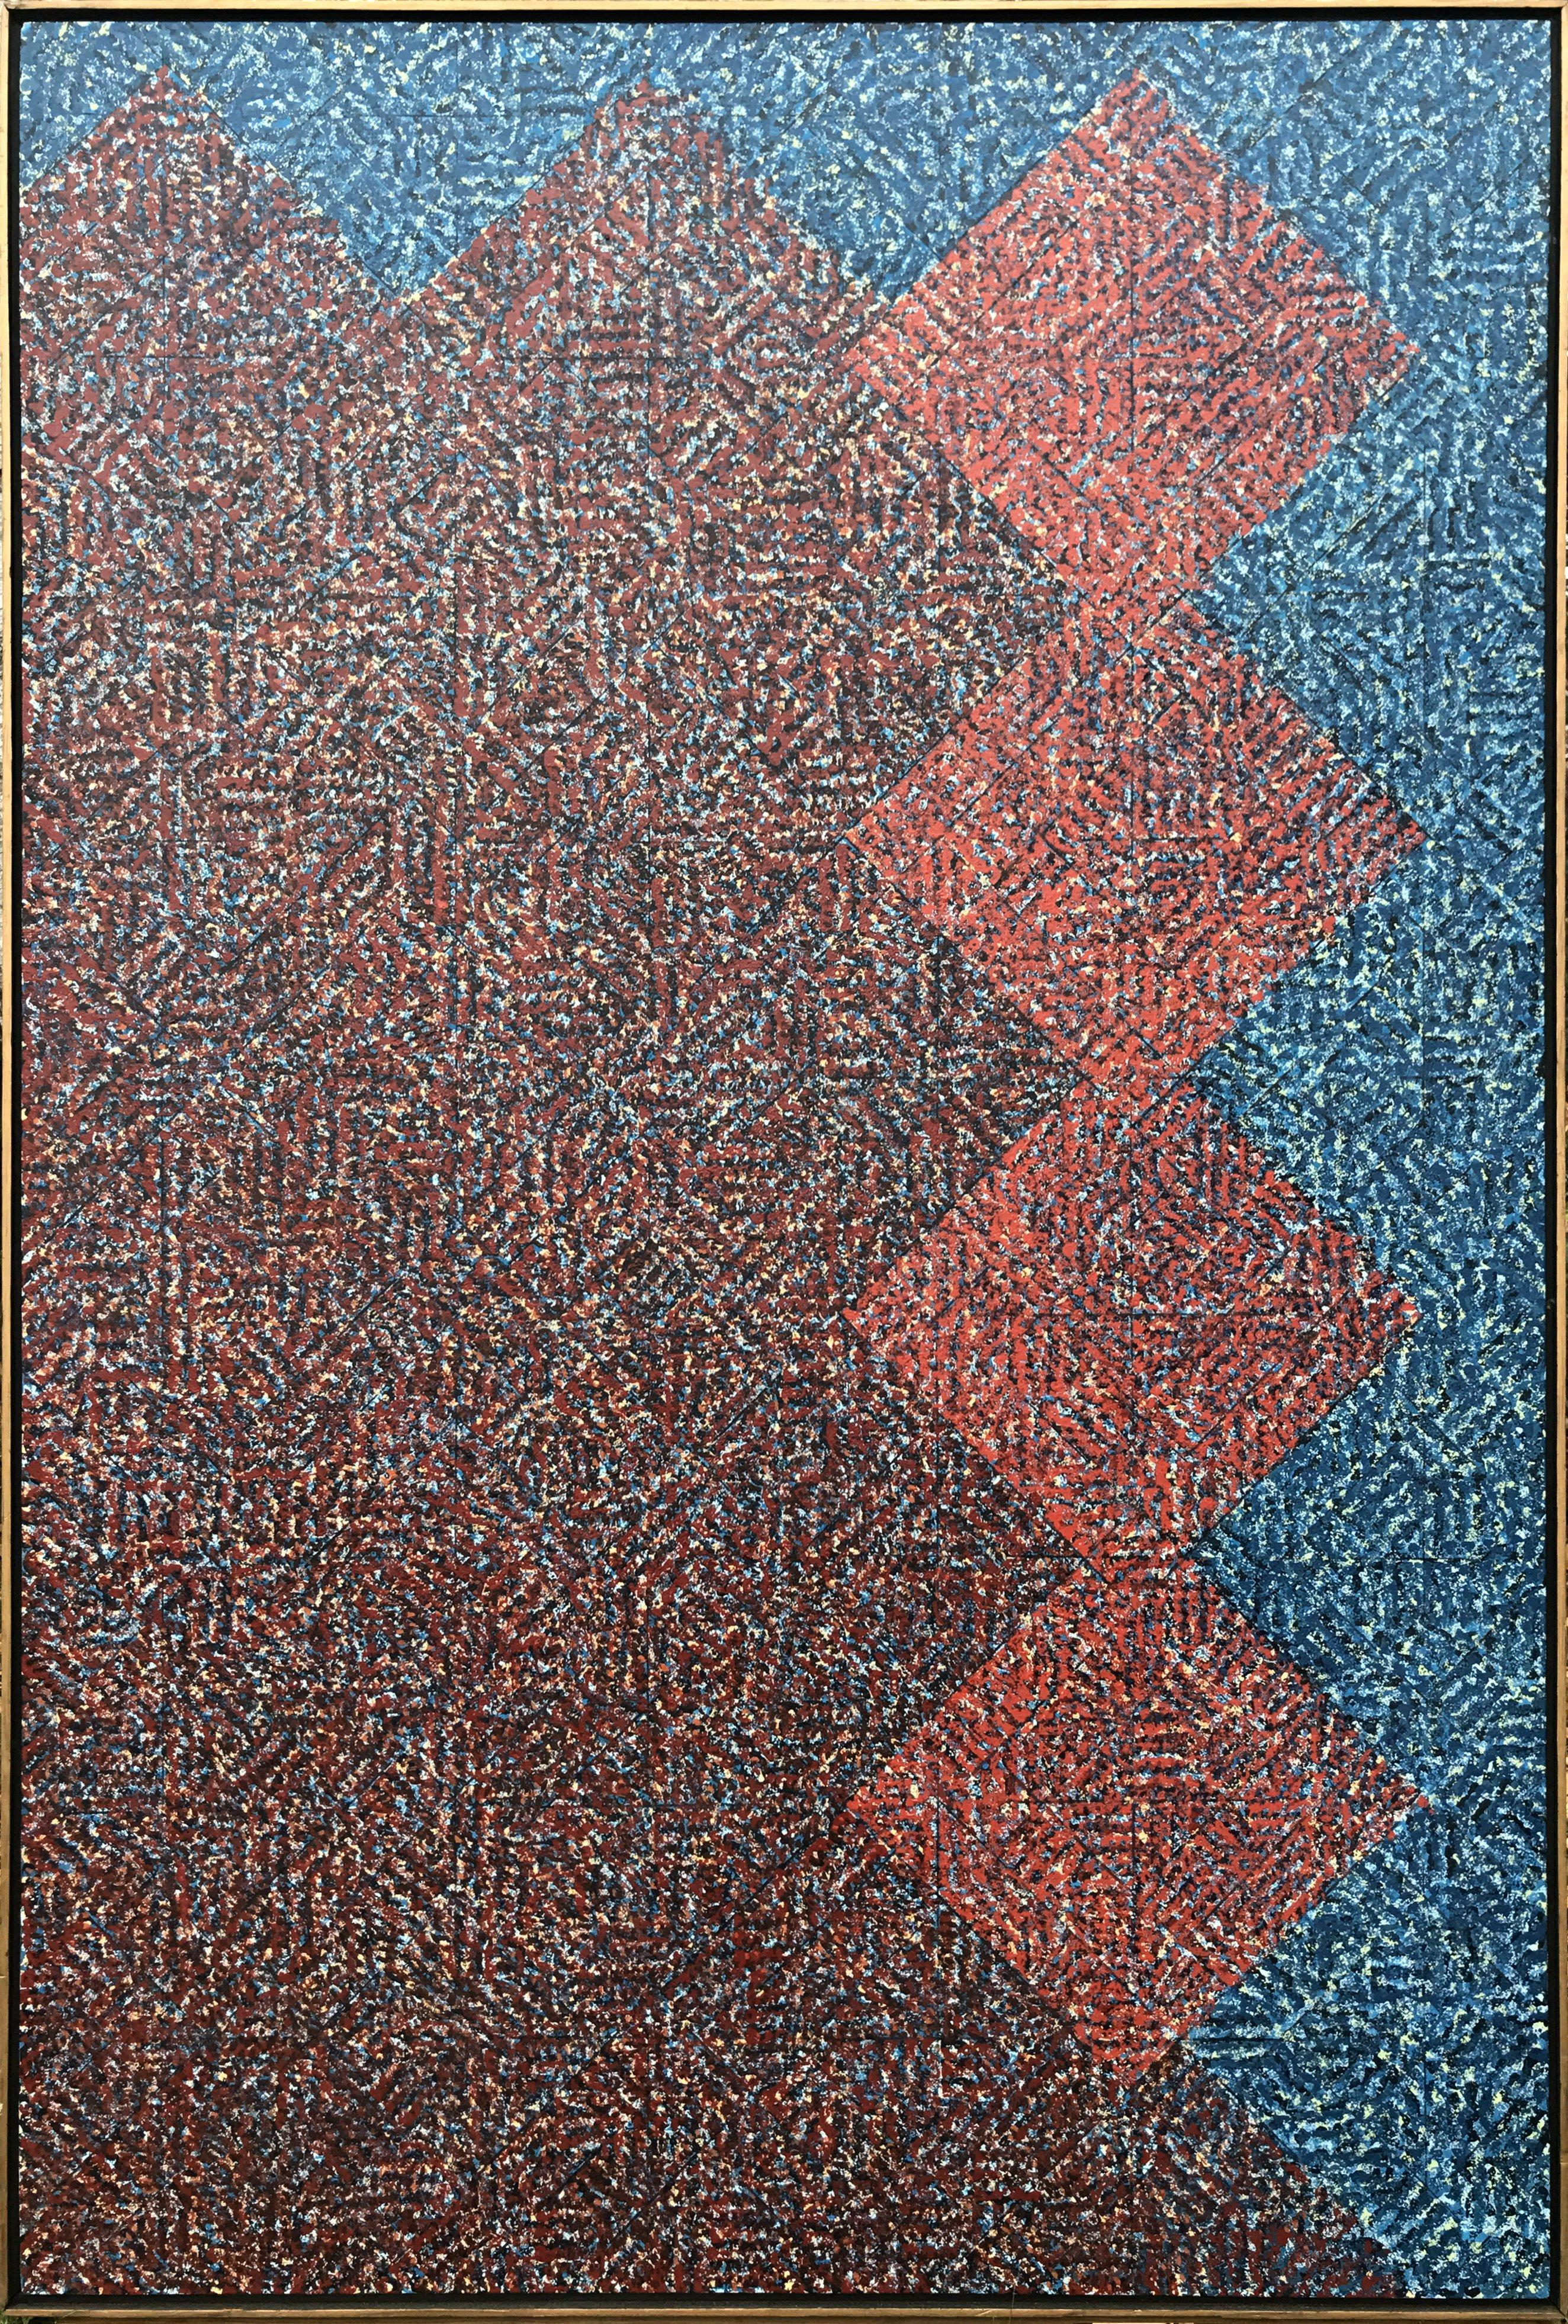 Tomoe, Large Geometric Abstract Painting by Todd Boppel